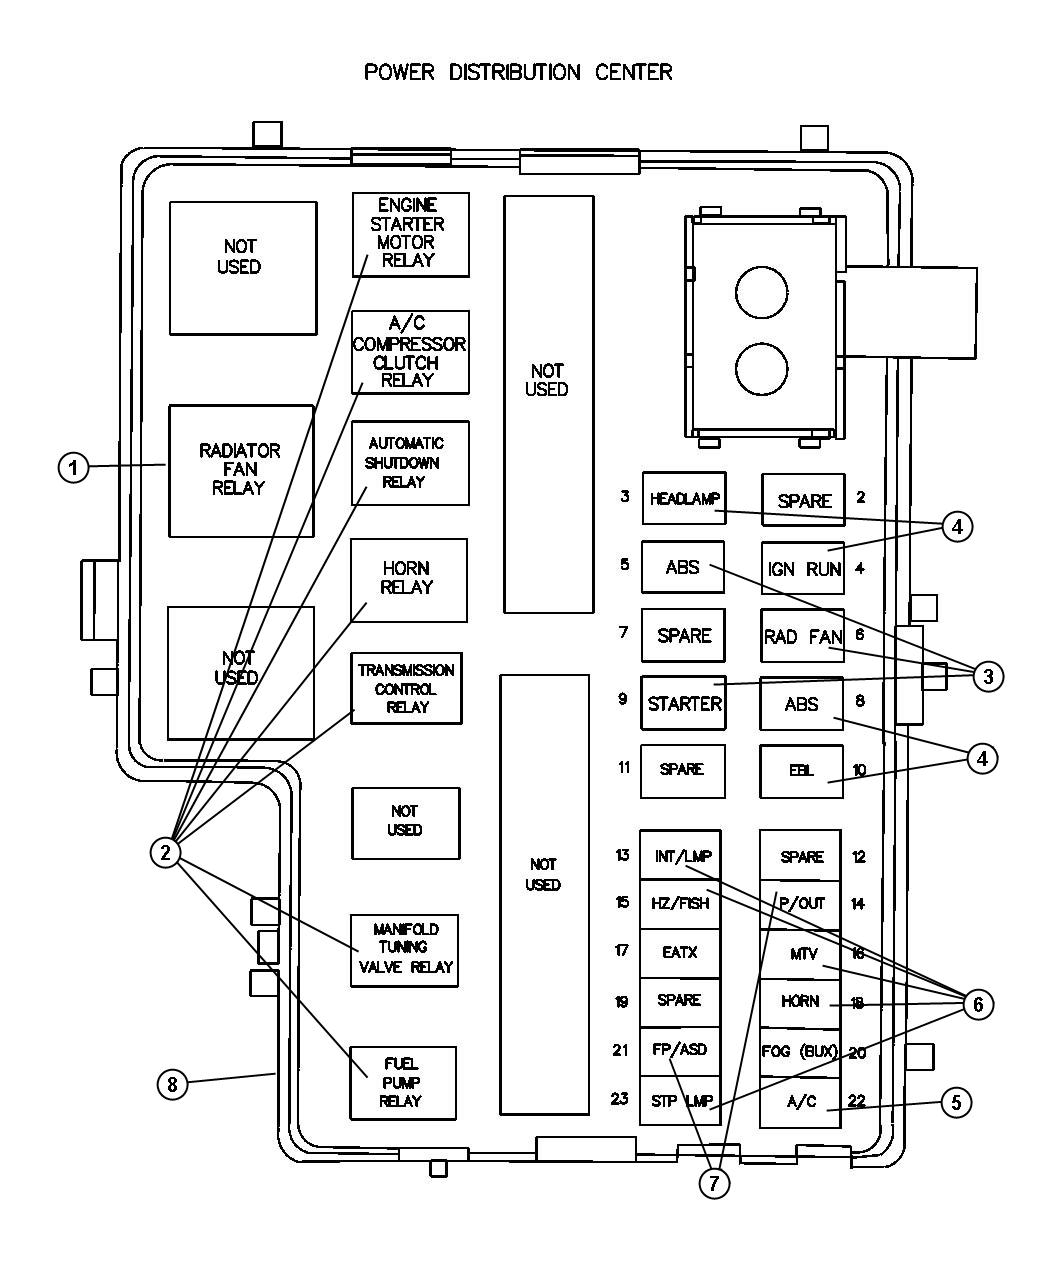 Thats The Distribution Center Diagram Where Would I Install That